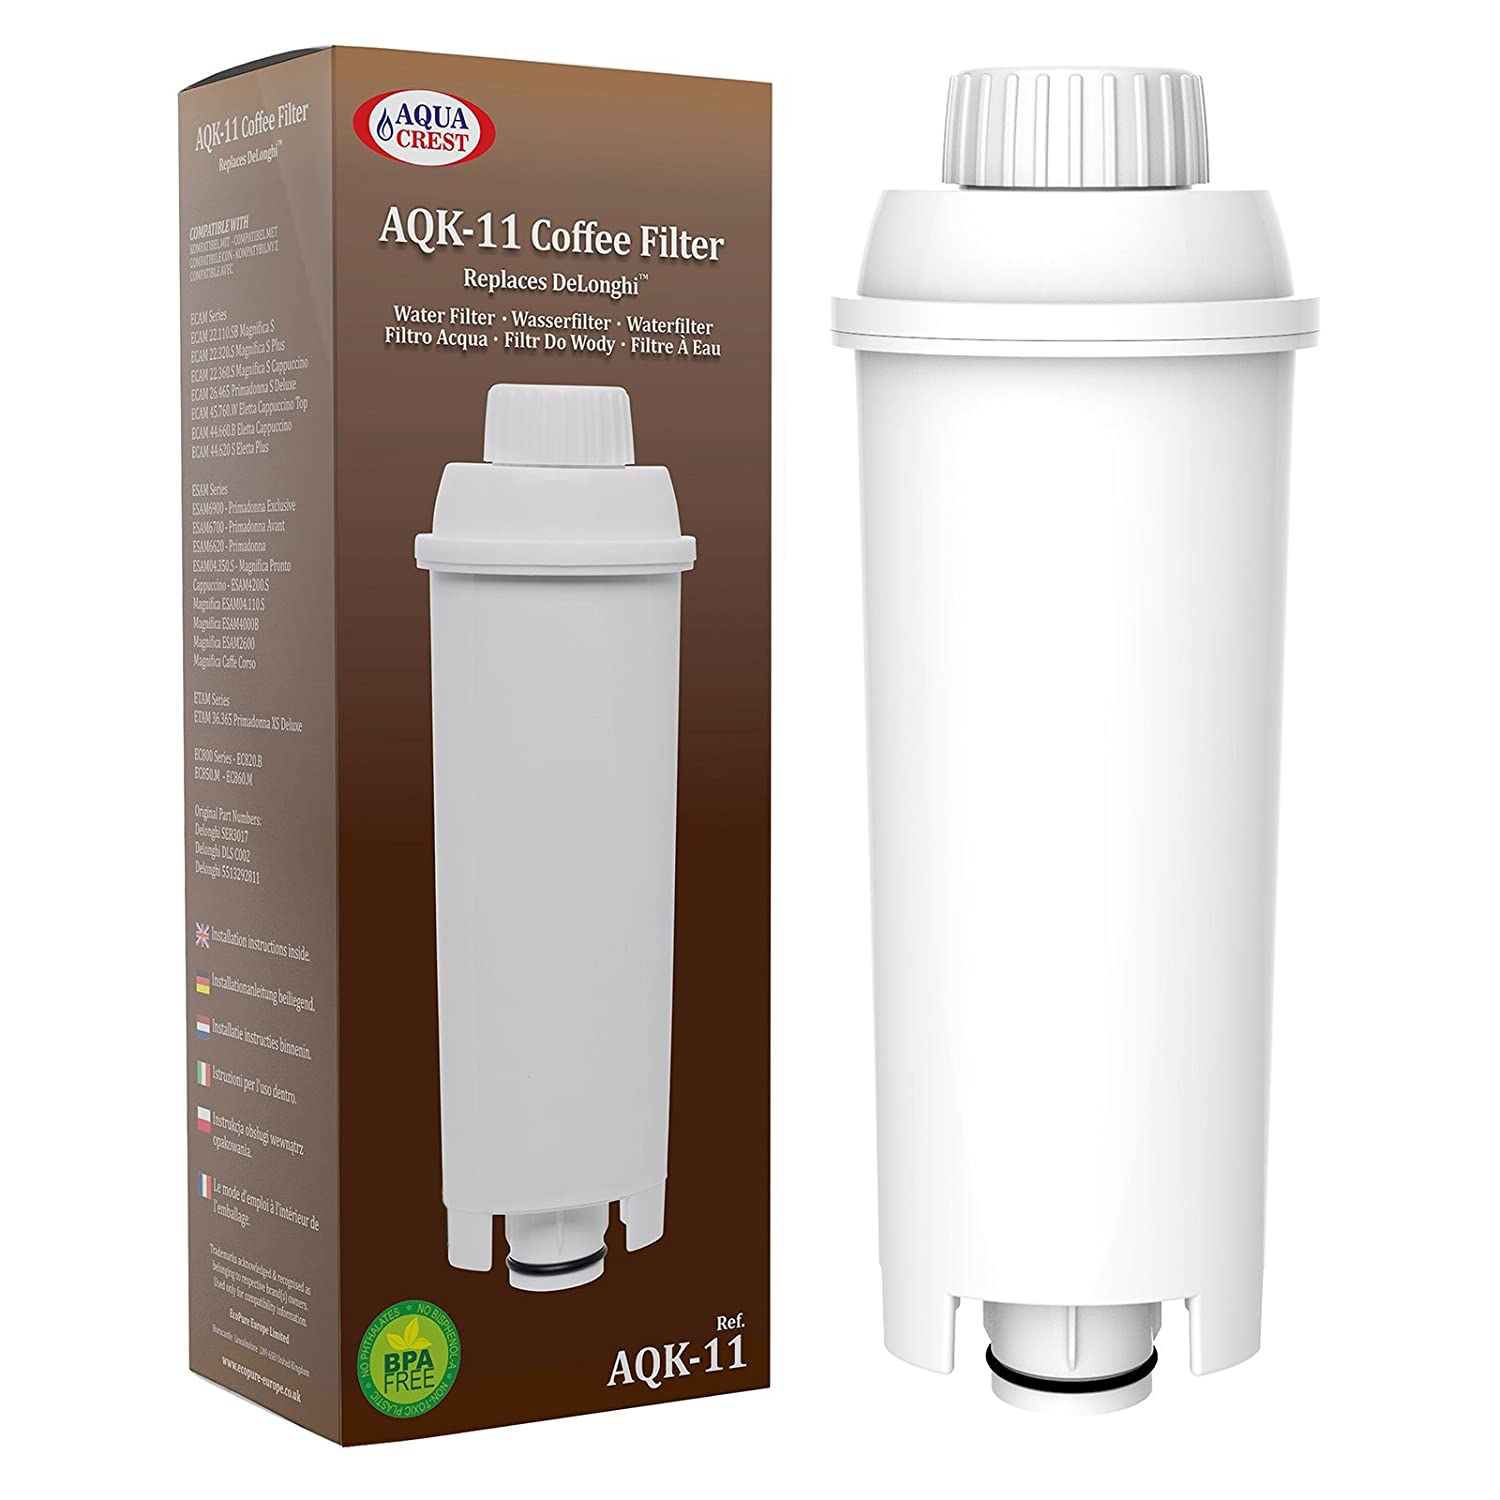 AquaCrest AQK-11 Compatible Coffee-Machine Water Filter Replacement for DeLonghi DLSC002, SER3017 & 5513292811 - including versions of ECAM, ESAM, ETAM series (12) EcoPure